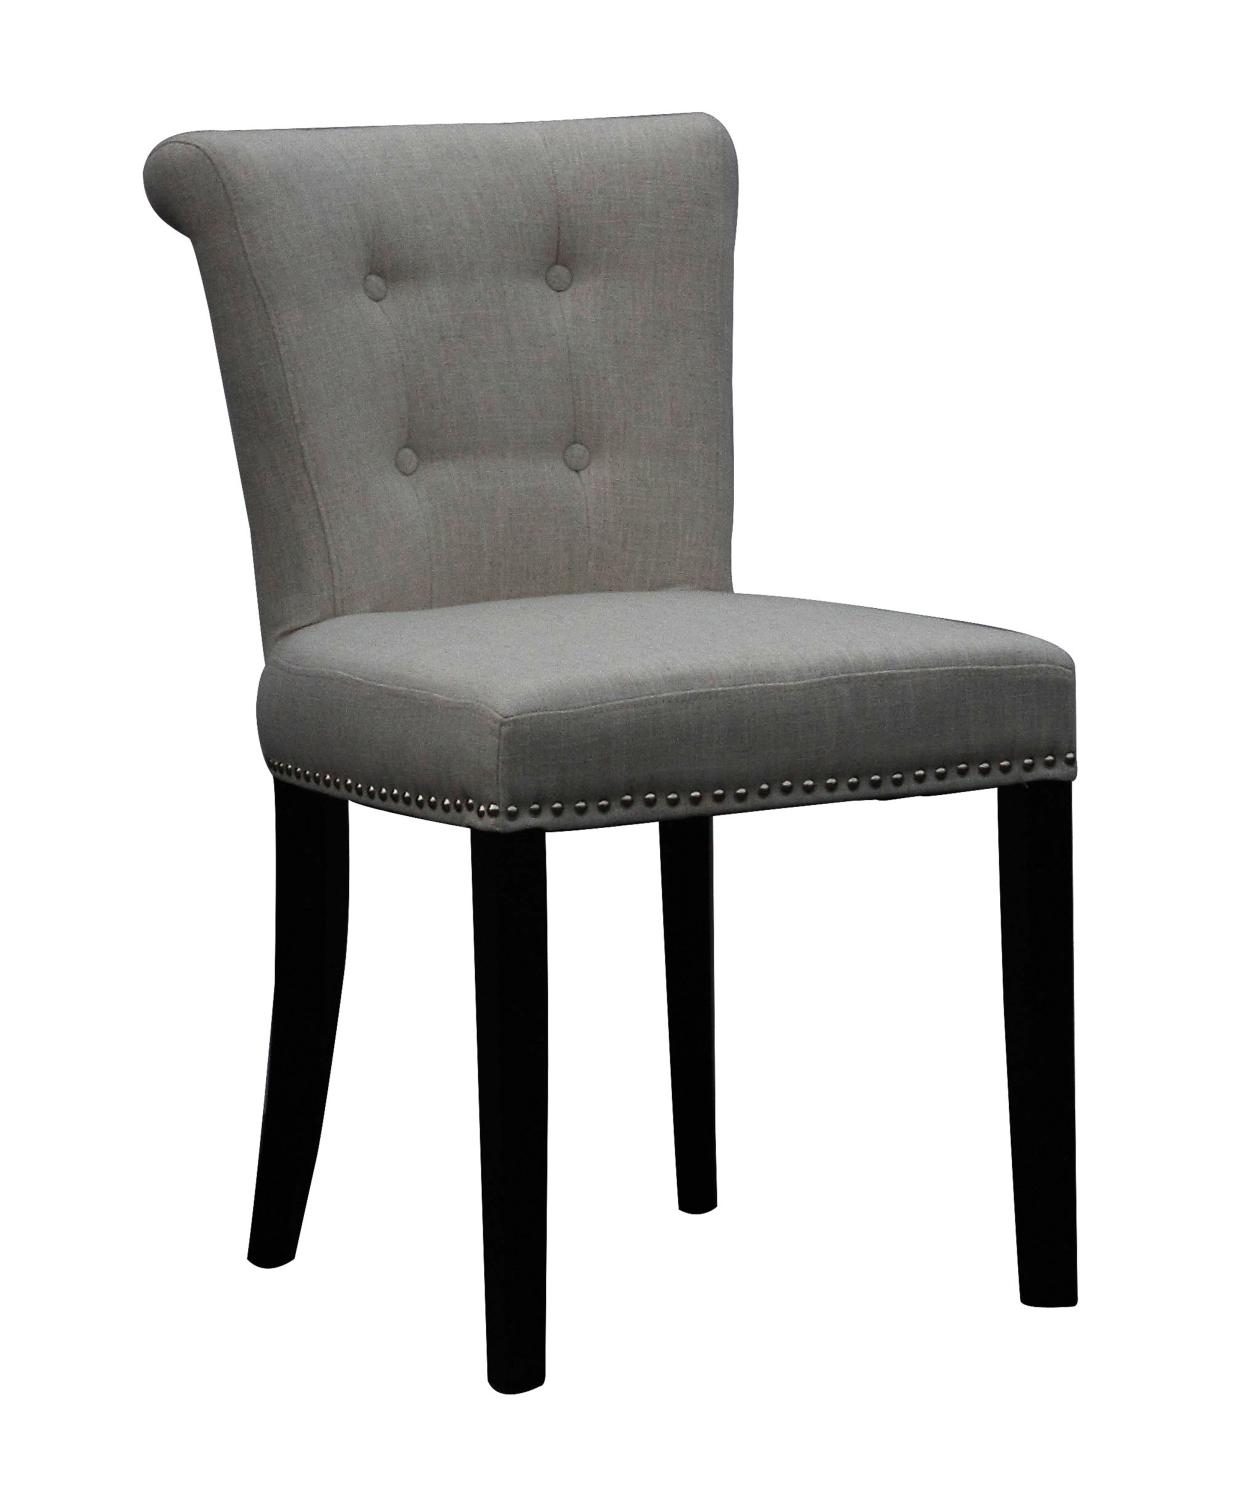 Regal Plush Grey Linen Style Upholstered Dining Or Accent